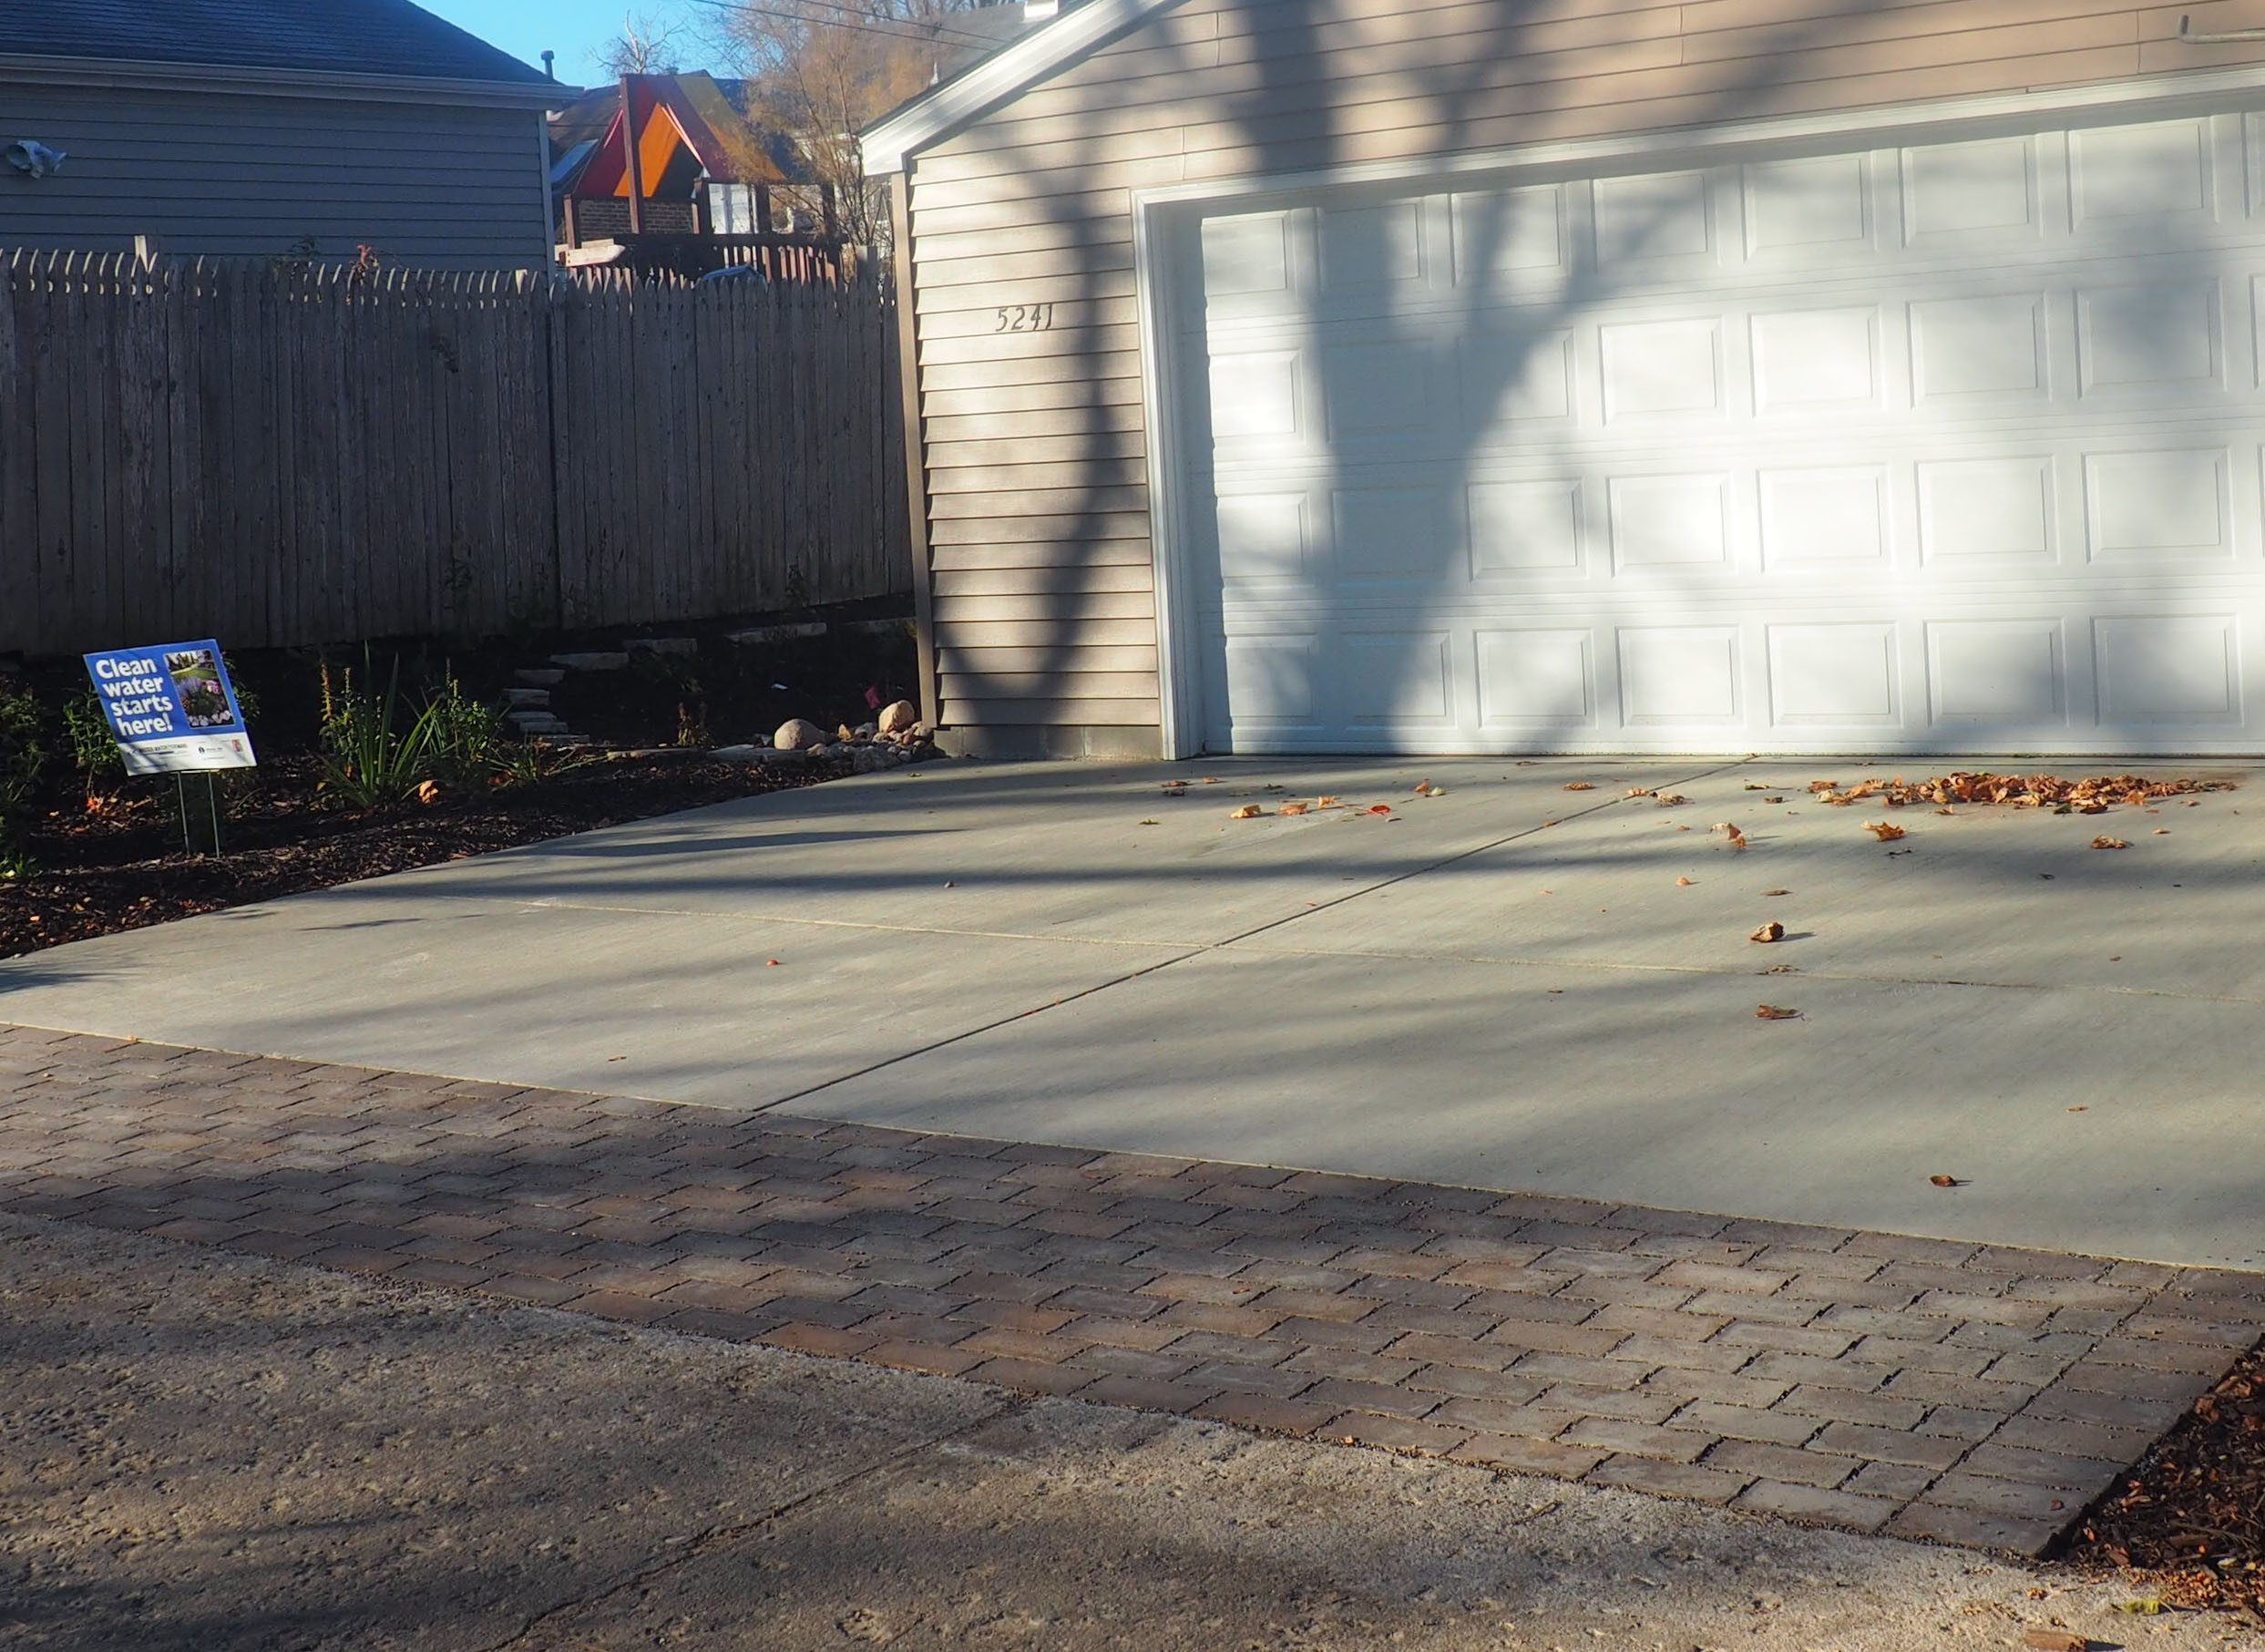 Because the size of permeable pavement installations are relatively small in the Blooming Alley projects, they can be easily maintained by homeowners.